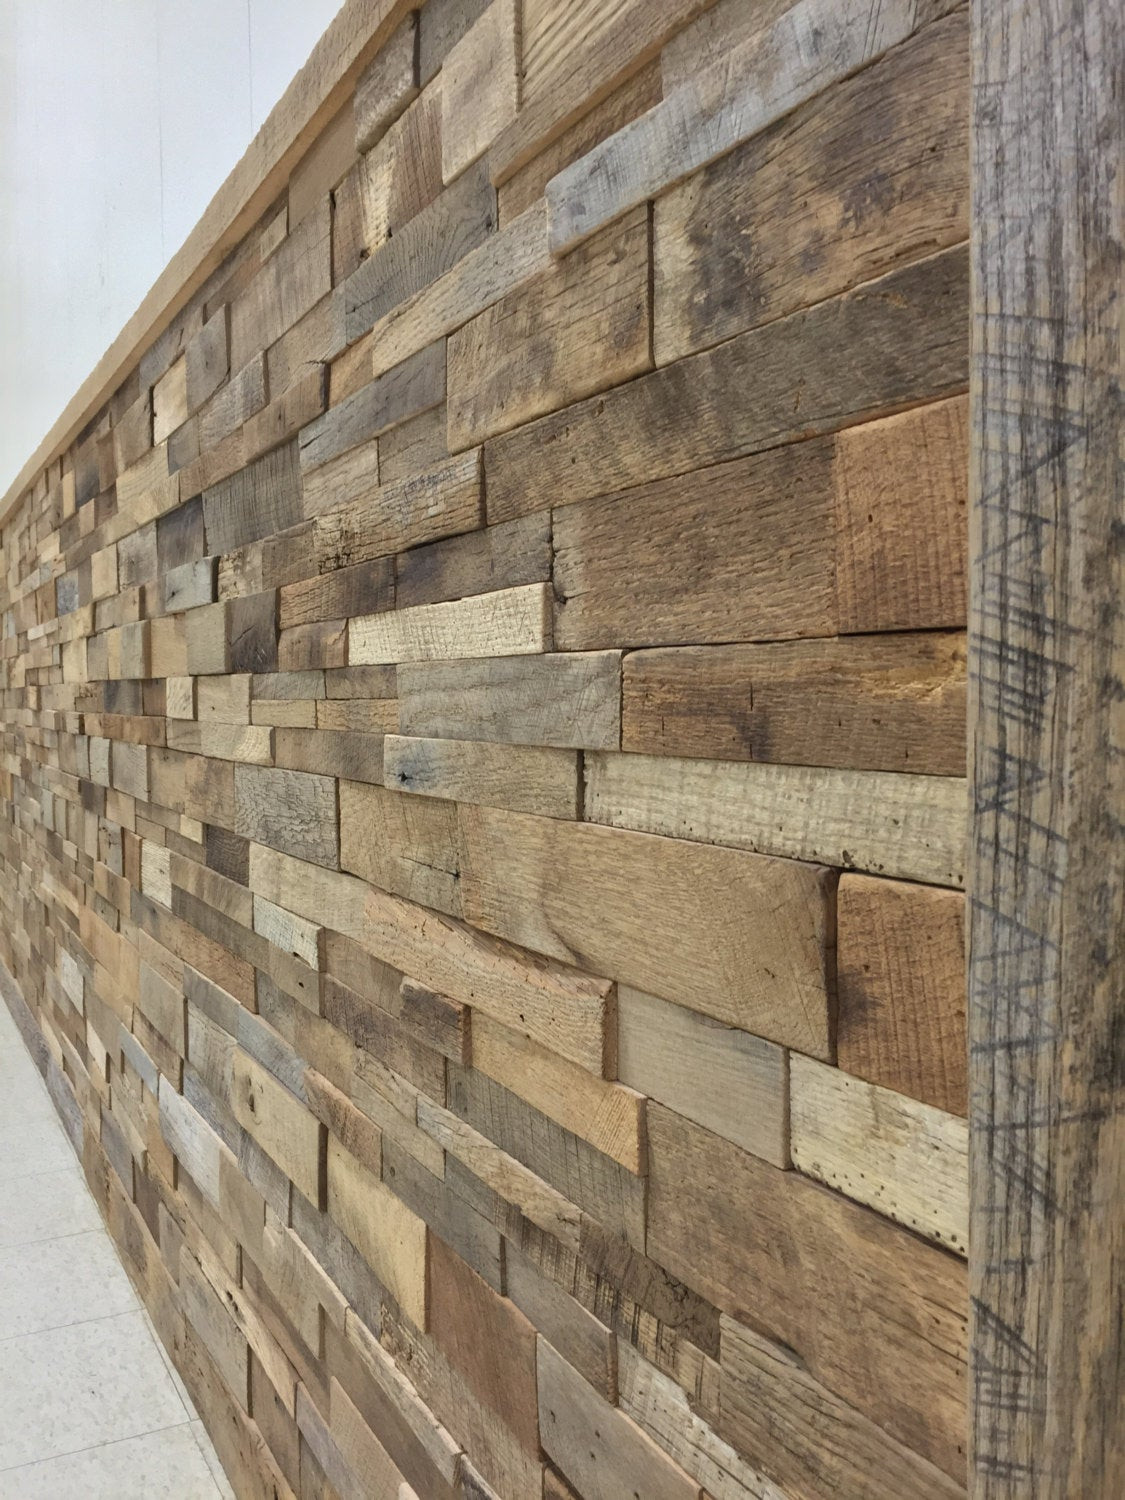 Best ideas about DIY Barnwood Wall . Save or Pin Reclaimed Barn Wood Stacked Wall Panels DIY by Now.